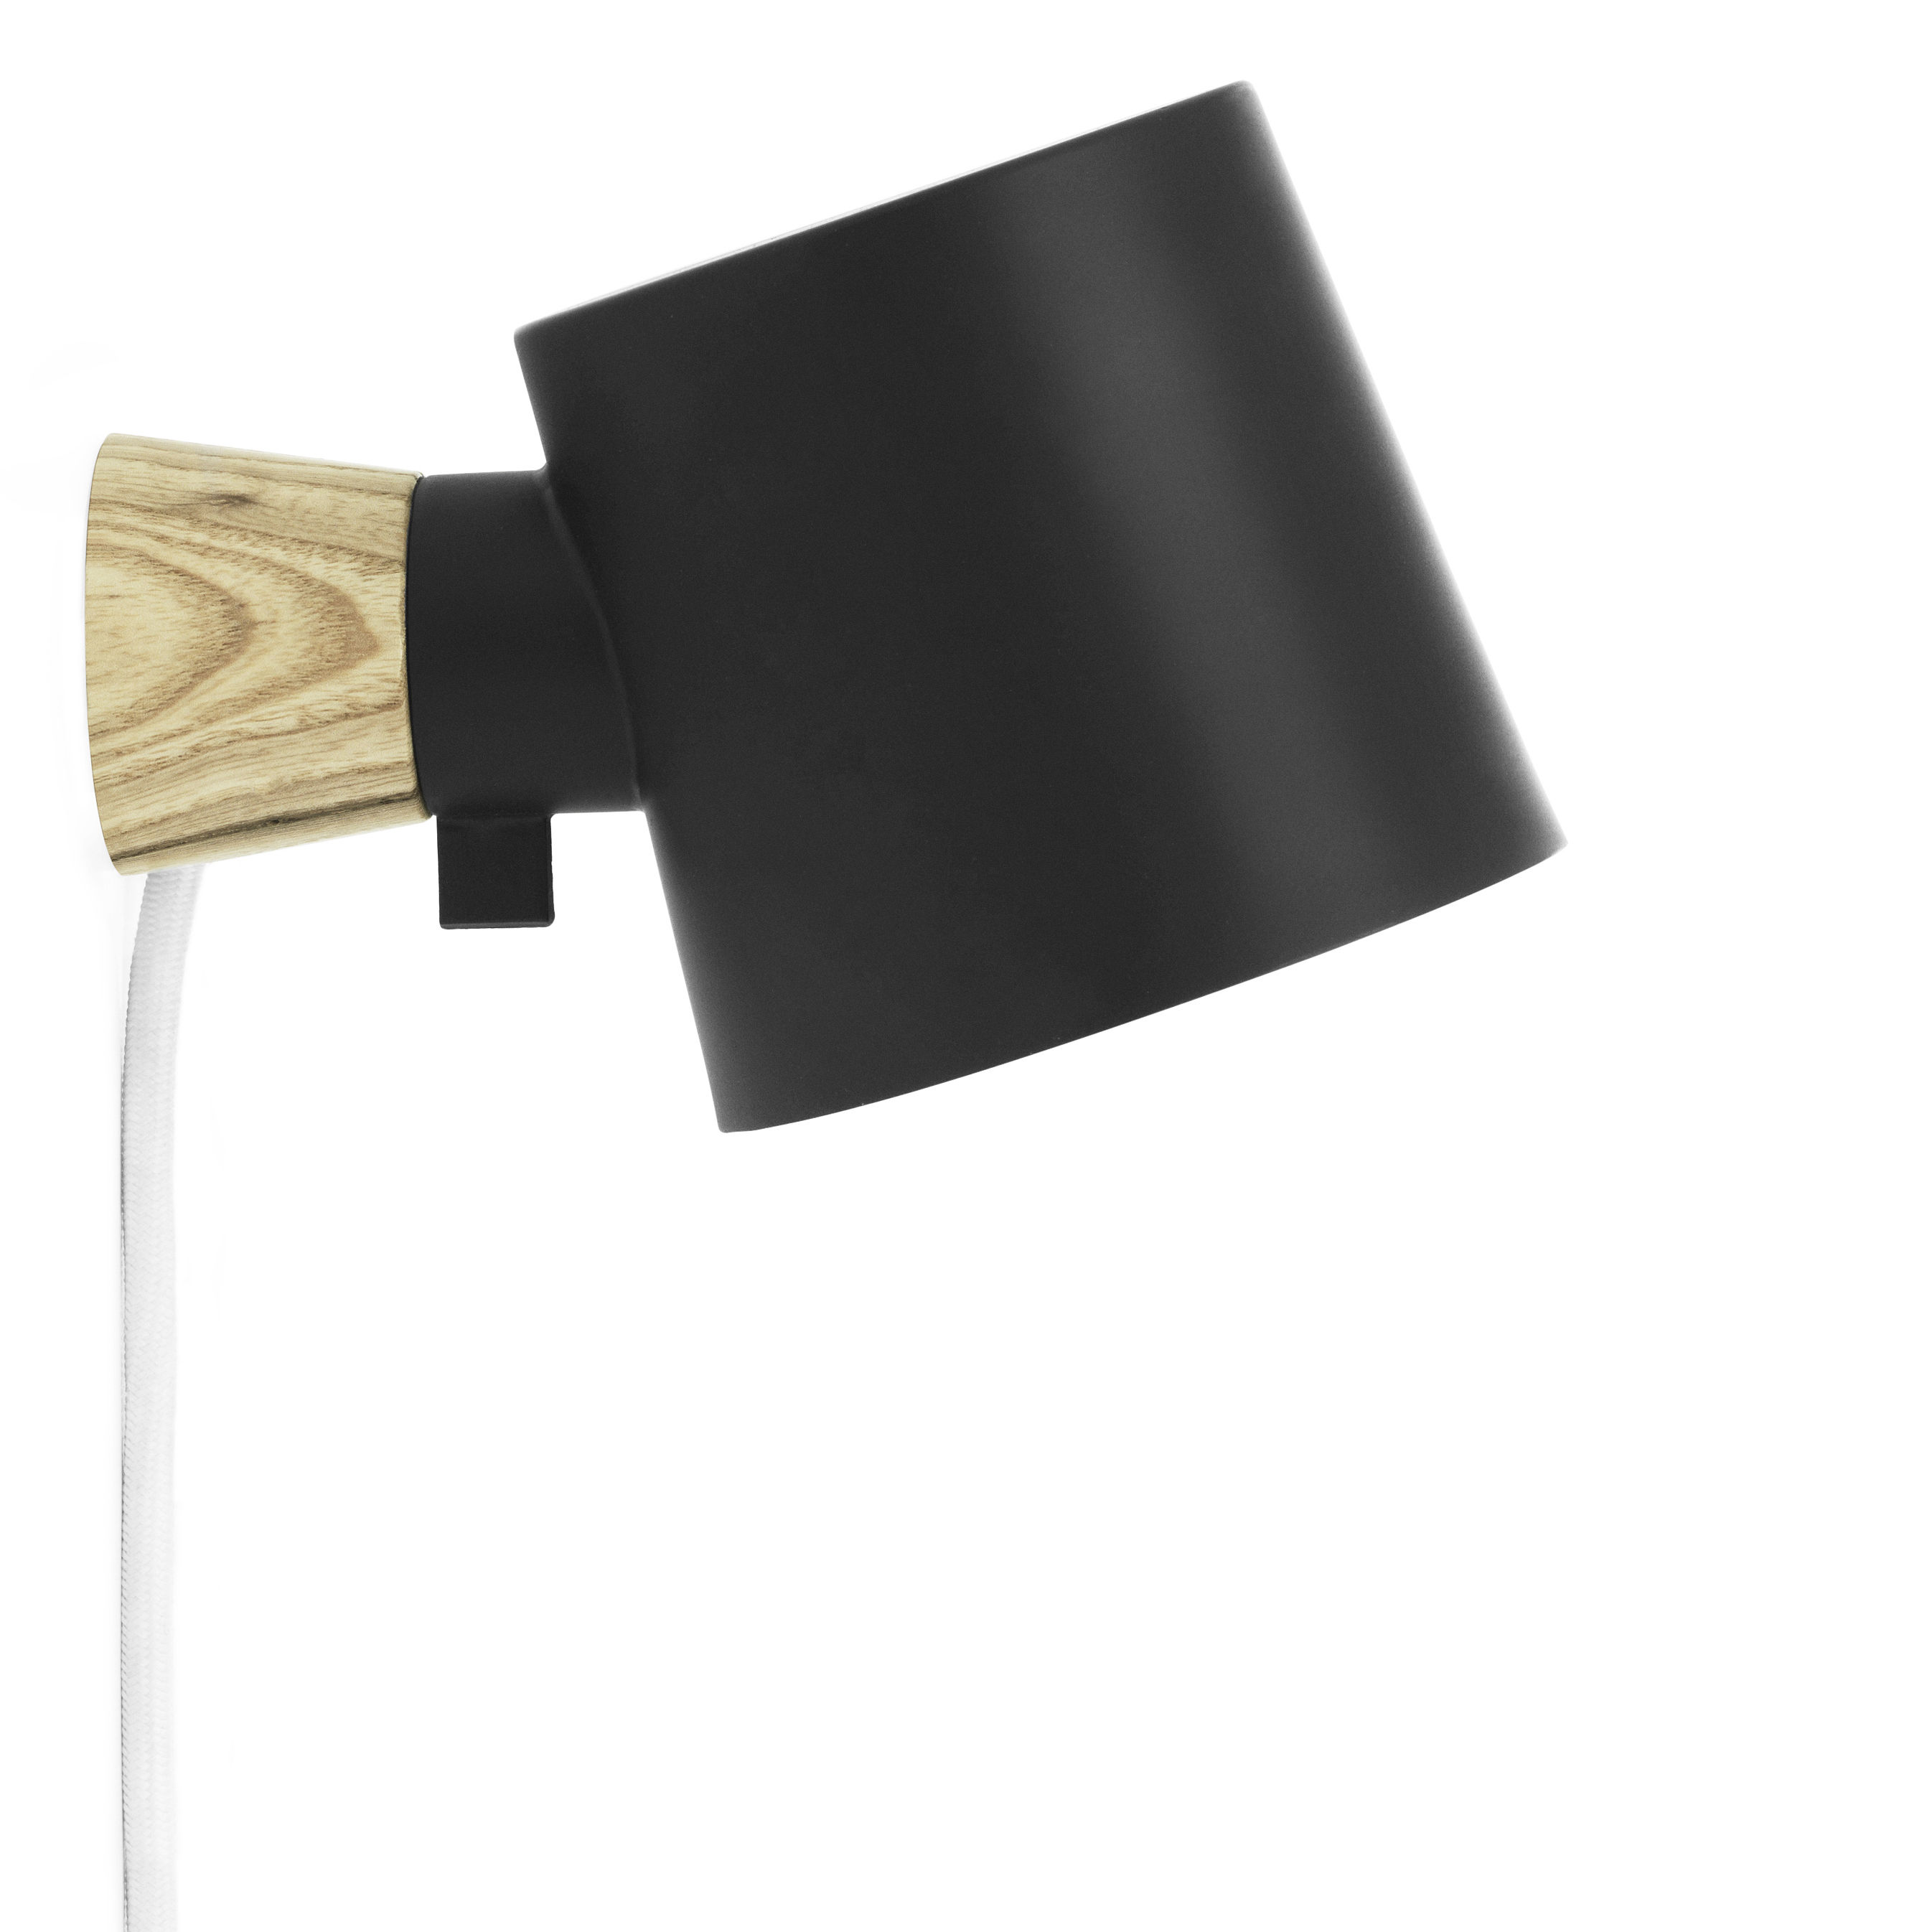 Lighting - Wall Lights - Rise Wall light with plug - Rotating / Wood & metal by Normann Copenhagen - Black - Ashwood, Lacquered metal